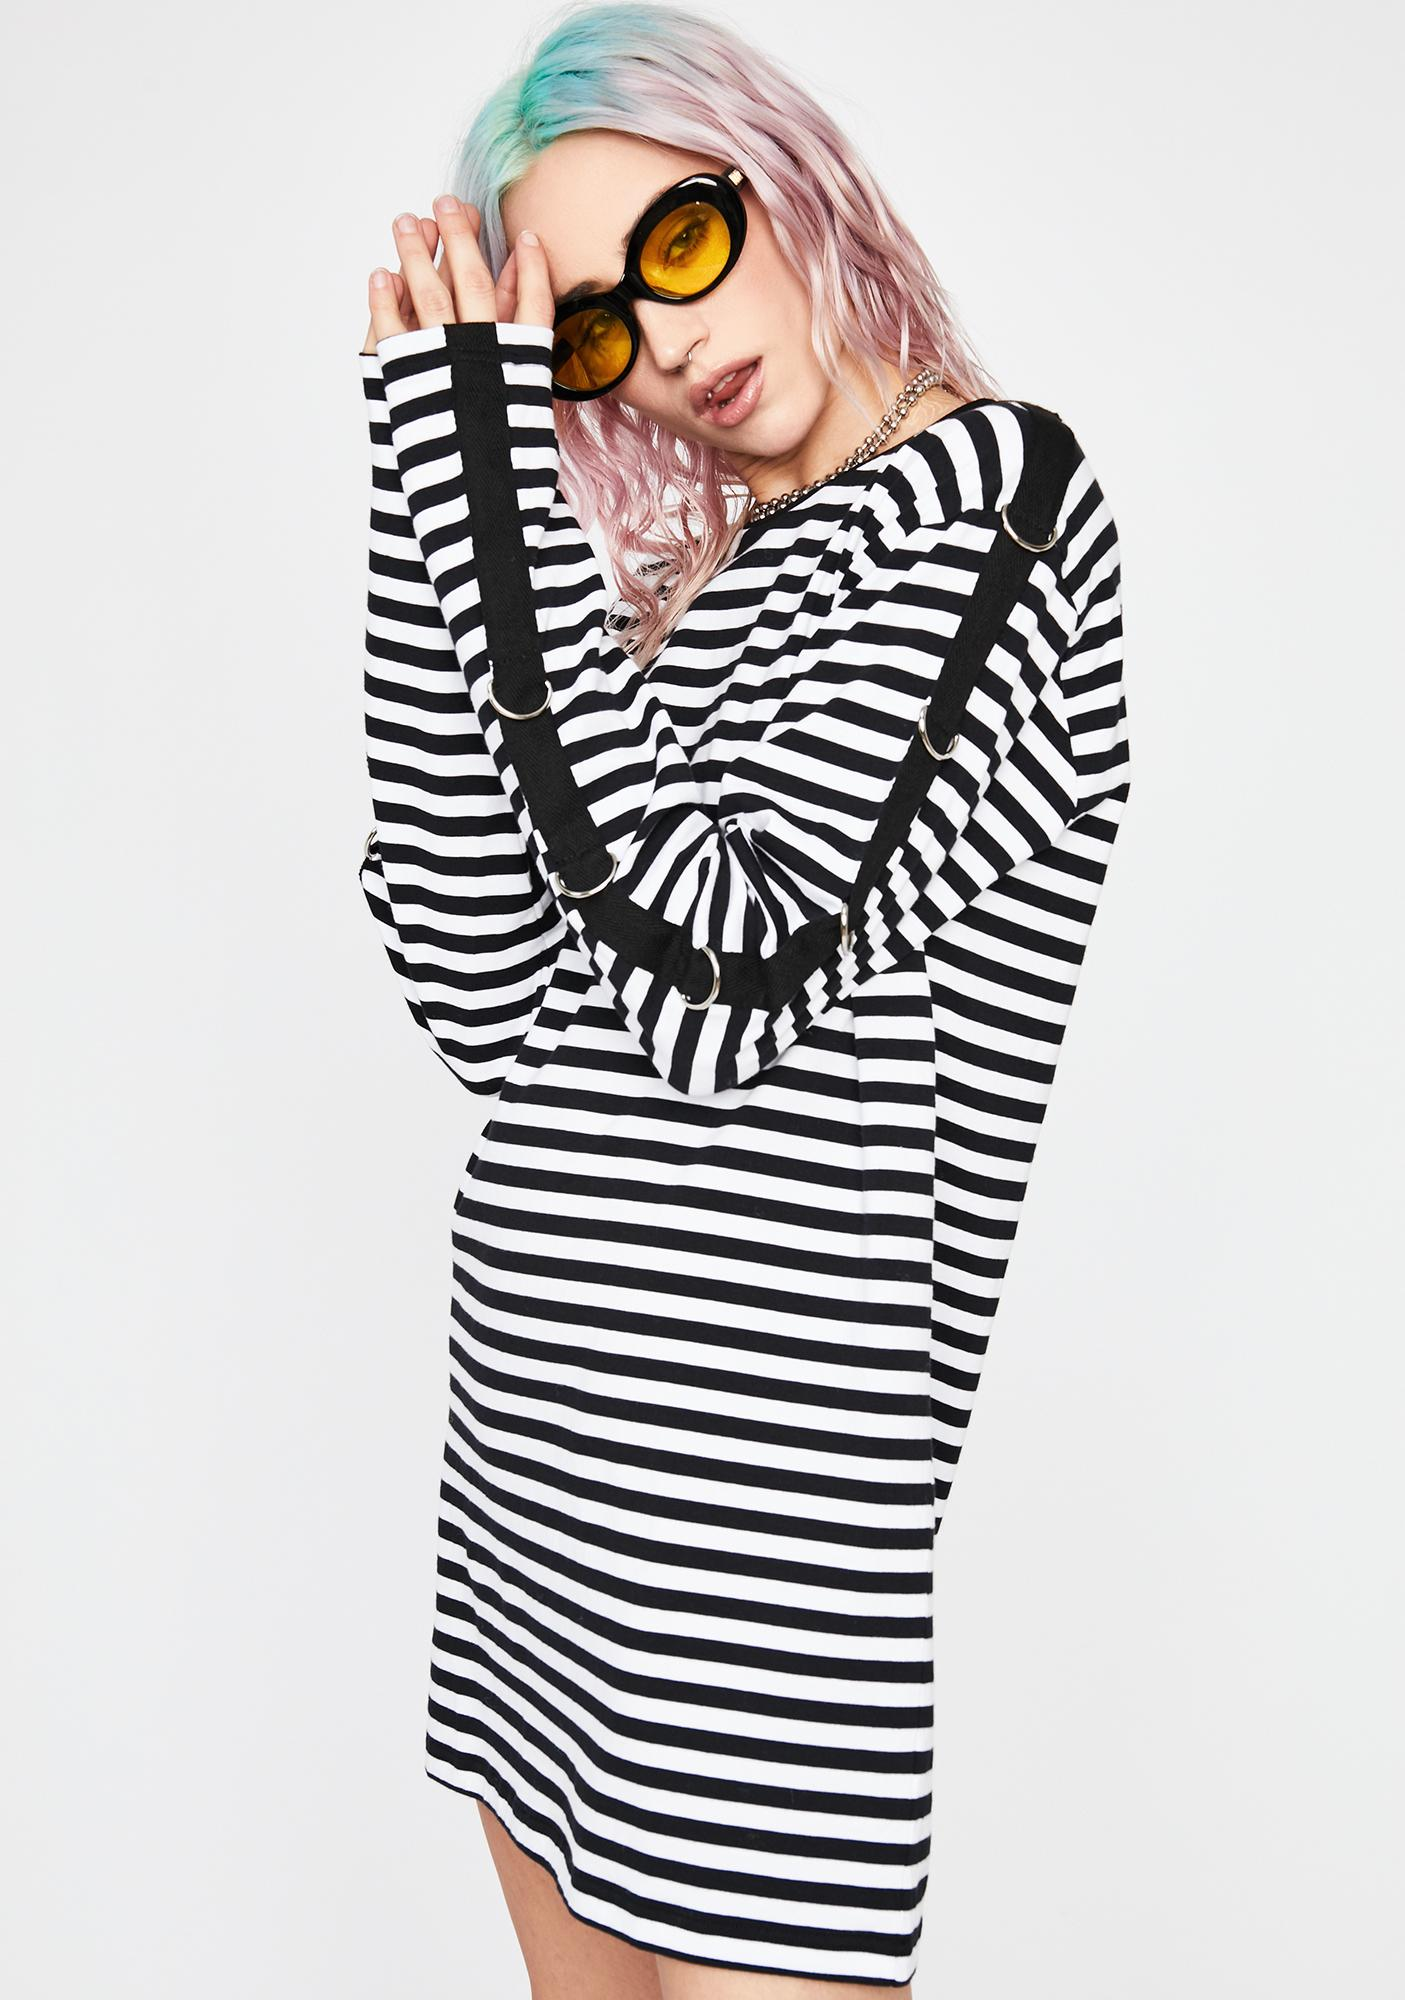 Current Mood Holy Mass Chaos Striped Top